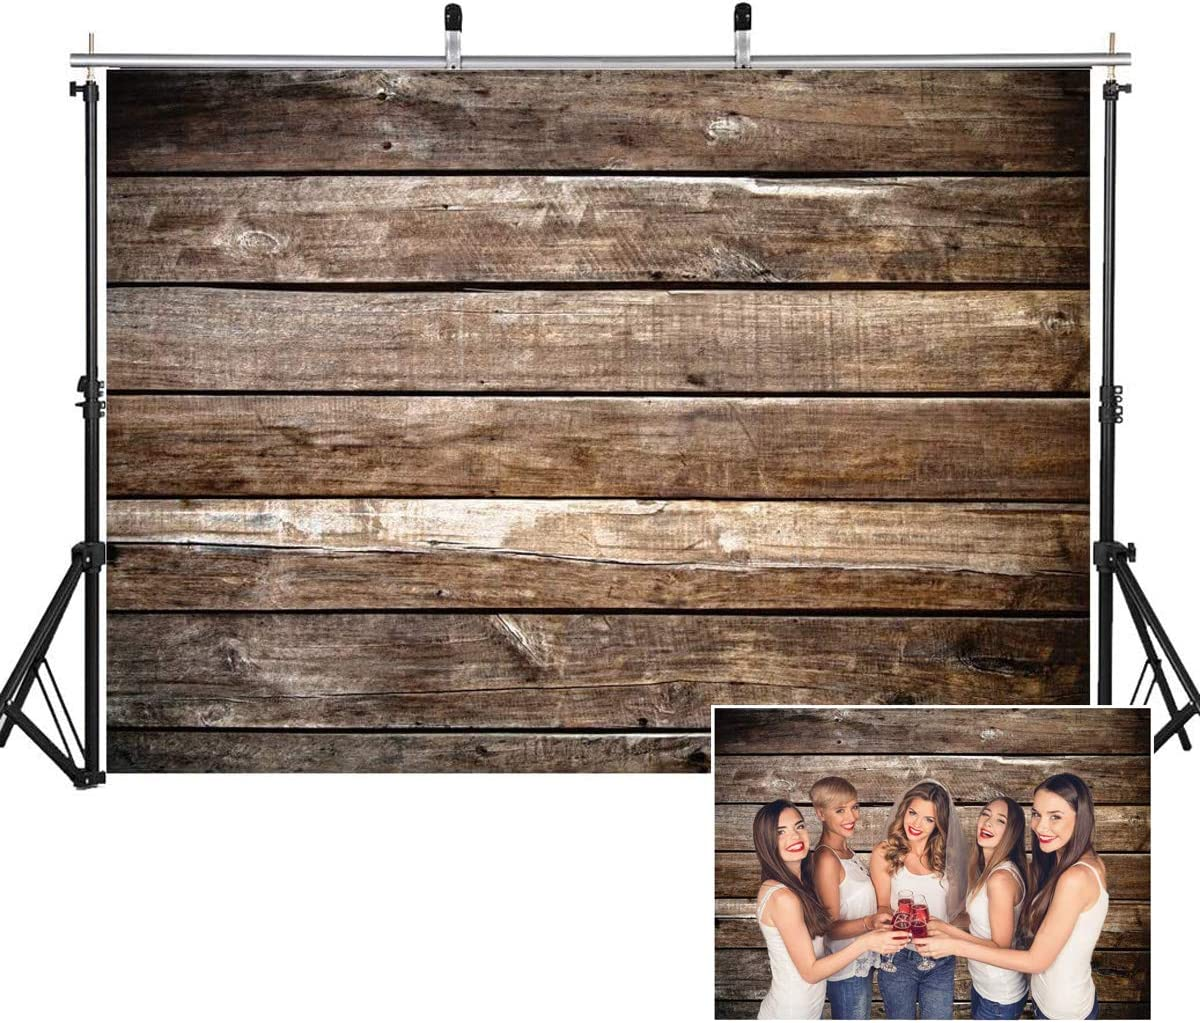 AIIKES 7x5FT Wooden Backdrops for Photography Wood Floor Backdrop Brown Wood Backdrops Newborn Baby Photo Backgrounds for Photography Studio Vinyl Photo Backdrop Home Decoration 11-425